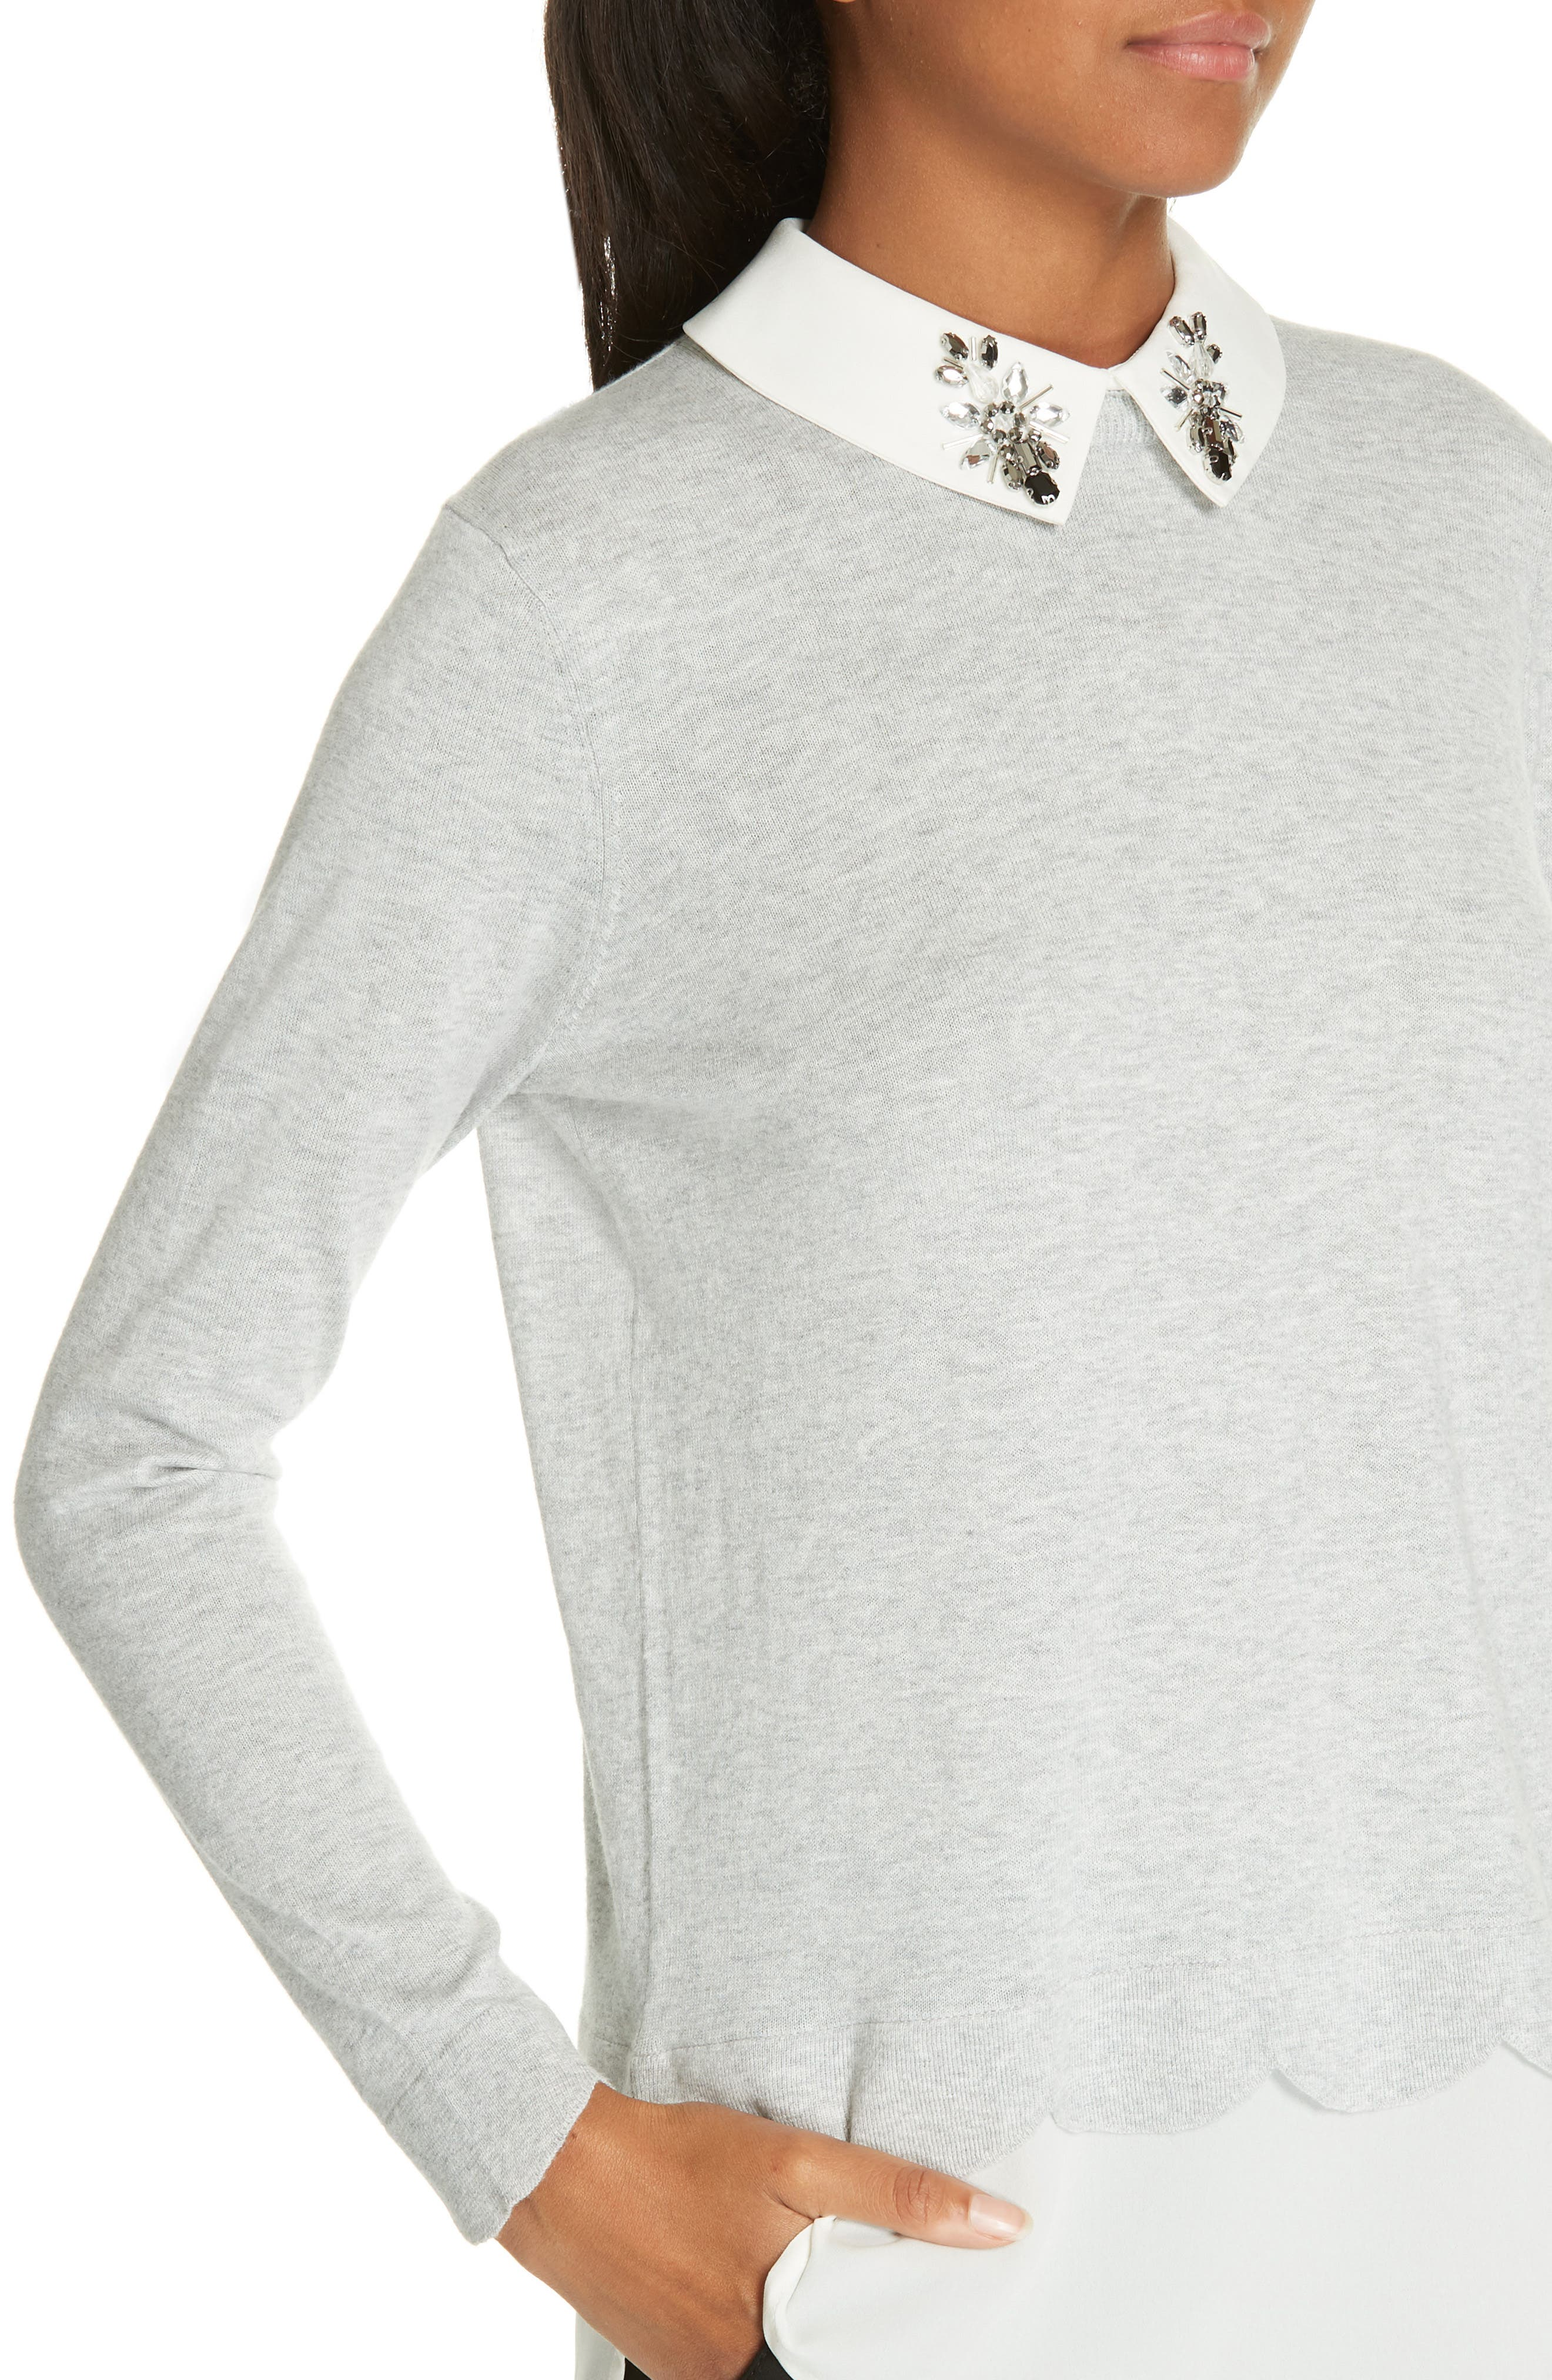 Suzaine Layered Sweater,                             Alternate thumbnail 4, color,                             GREY